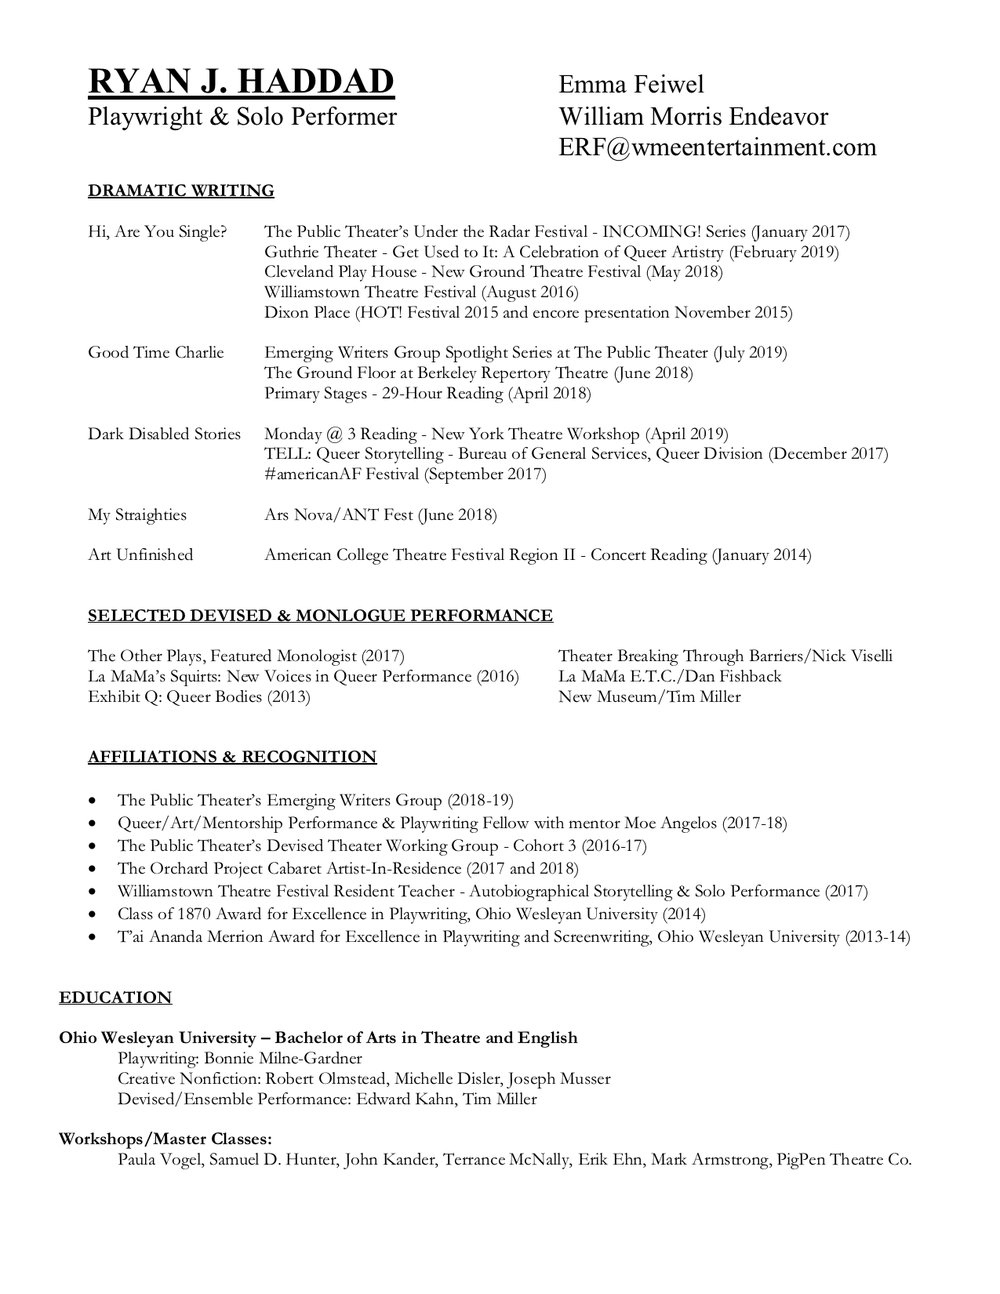 DOWNLOAD PLAYWRITING RESUME